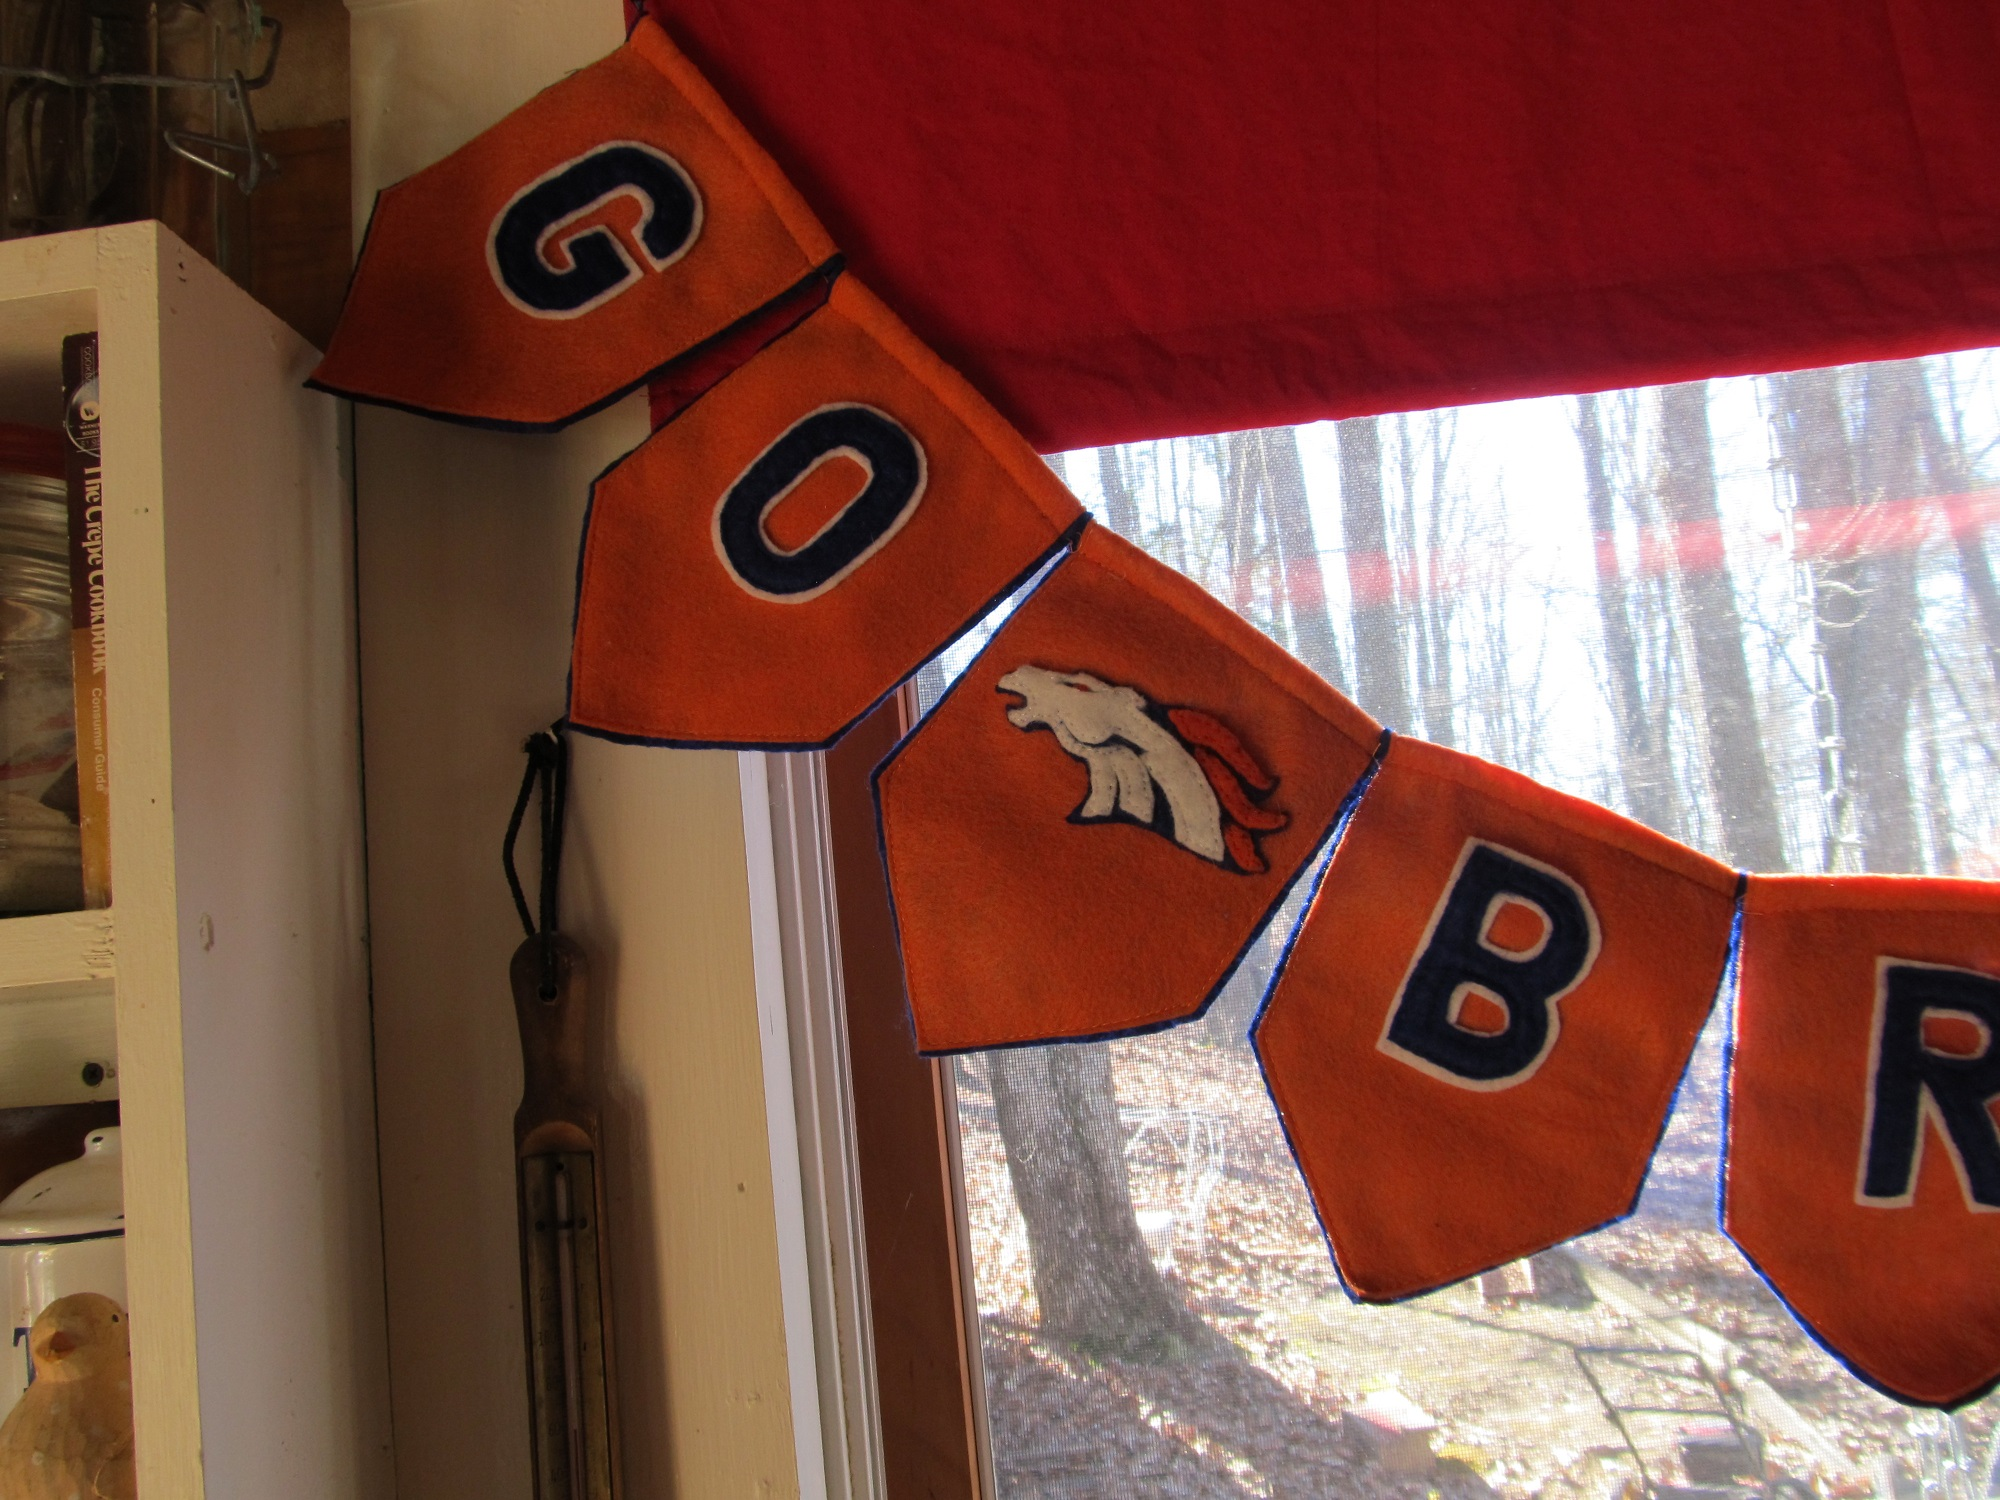 """<!-- AddThis Share Buttons above via filter on get_the_excerpt --> <div class=""""at-above-post-homepage"""" data-url=""""https://www.not2crafty.com/2014/01/denver-bronco-banner-super-bowl-party/"""" data-title=""""Denver bronco banner for your super bowl party""""></div>   I am a 49er fan who lives in Tennessee so will definitely be cheering for Peyton Manning and the Broncos. I decided to make a Bronco banner and am [...]<!-- AddThis Share Buttons below via filter on get_the_excerpt --> <div class=""""at-below-post-homepage"""" data-url=""""https://www.not2crafty.com/2014/01/denver-bronco-banner-super-bowl-party/"""" data-title=""""Denver bronco banner for your super bowl party""""></div><!-- AddThis Share Buttons generic via filter on get_the_excerpt --> <!-- AddThis Related Posts generic via filter on get_the_excerpt -->"""